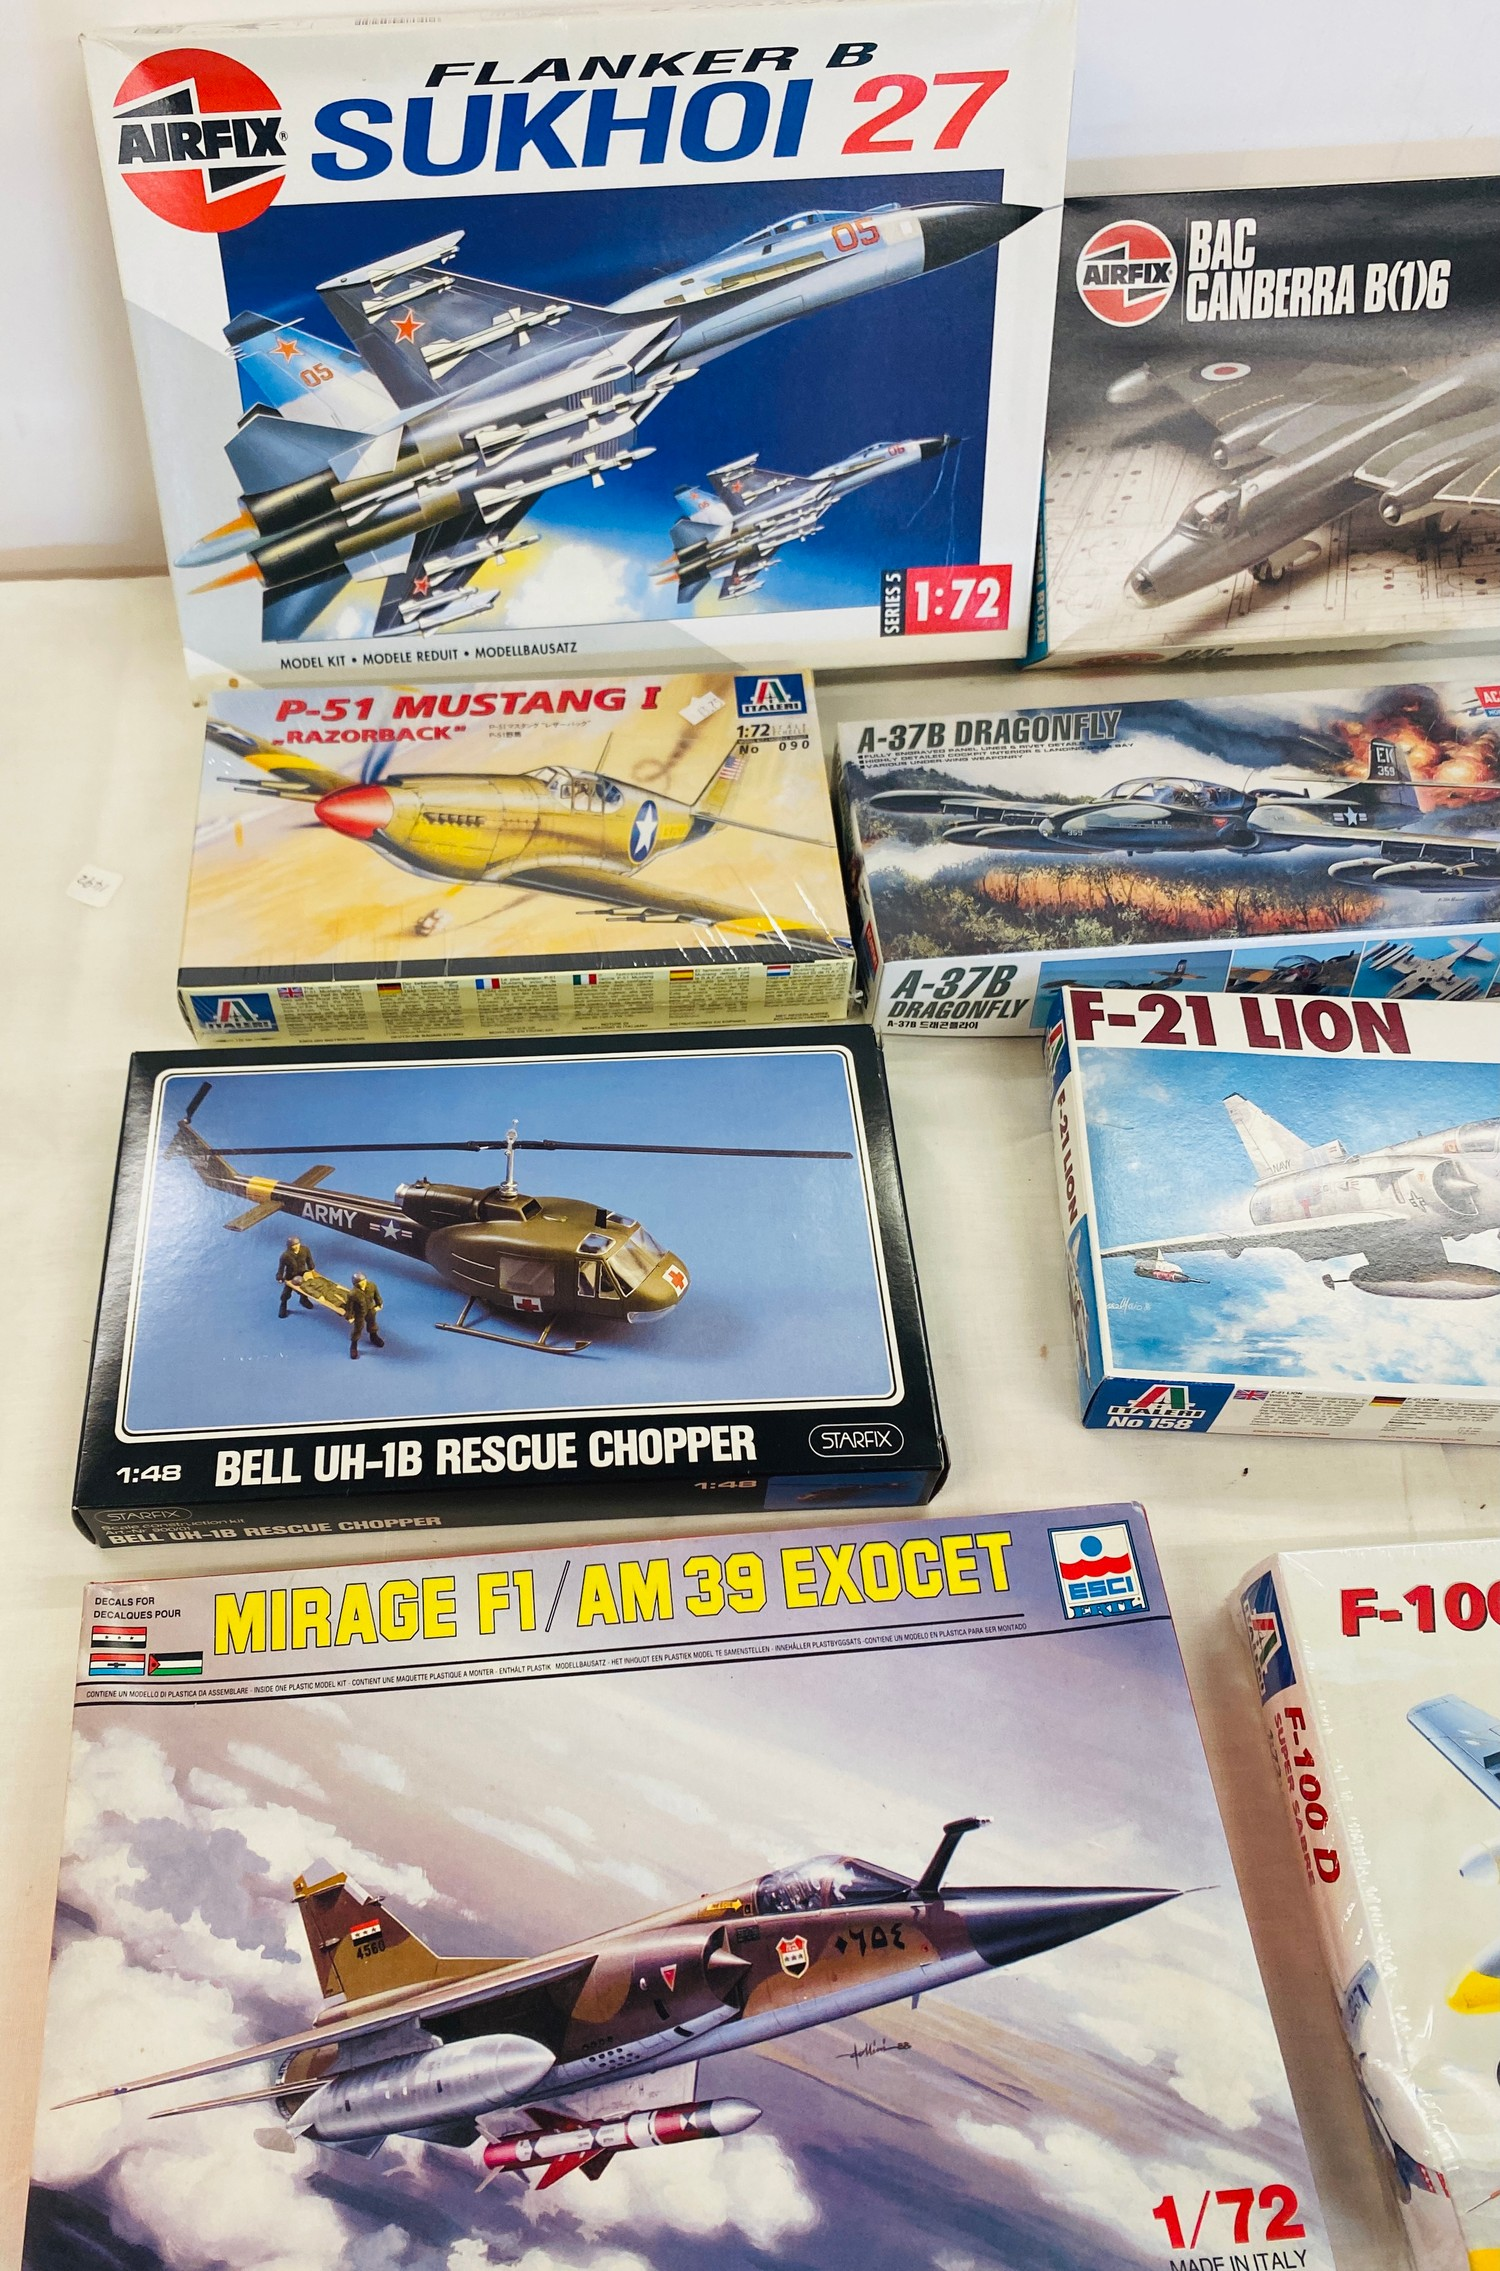 Selection of 8 boxed craft models to include, Airfix Sukhoi 27, Mirage F1, F-21 Lion, Bell vUH-1B - Image 3 of 3